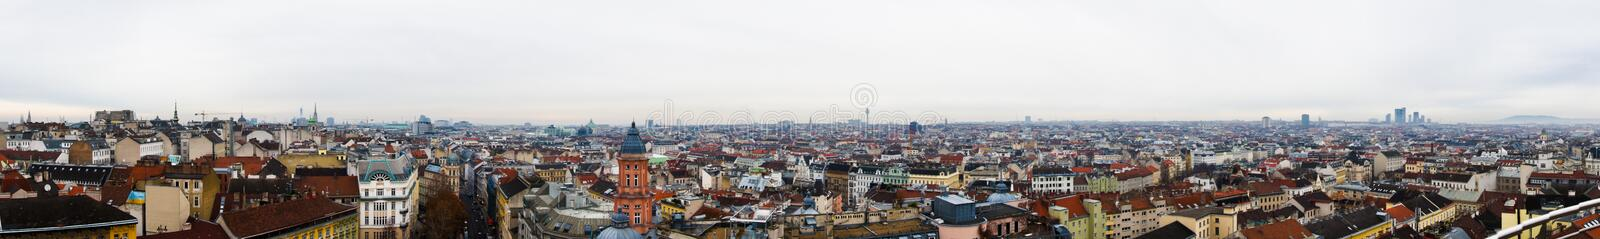 Download Vienna panoram stock photo. Image of sightview, tourism - 30612420